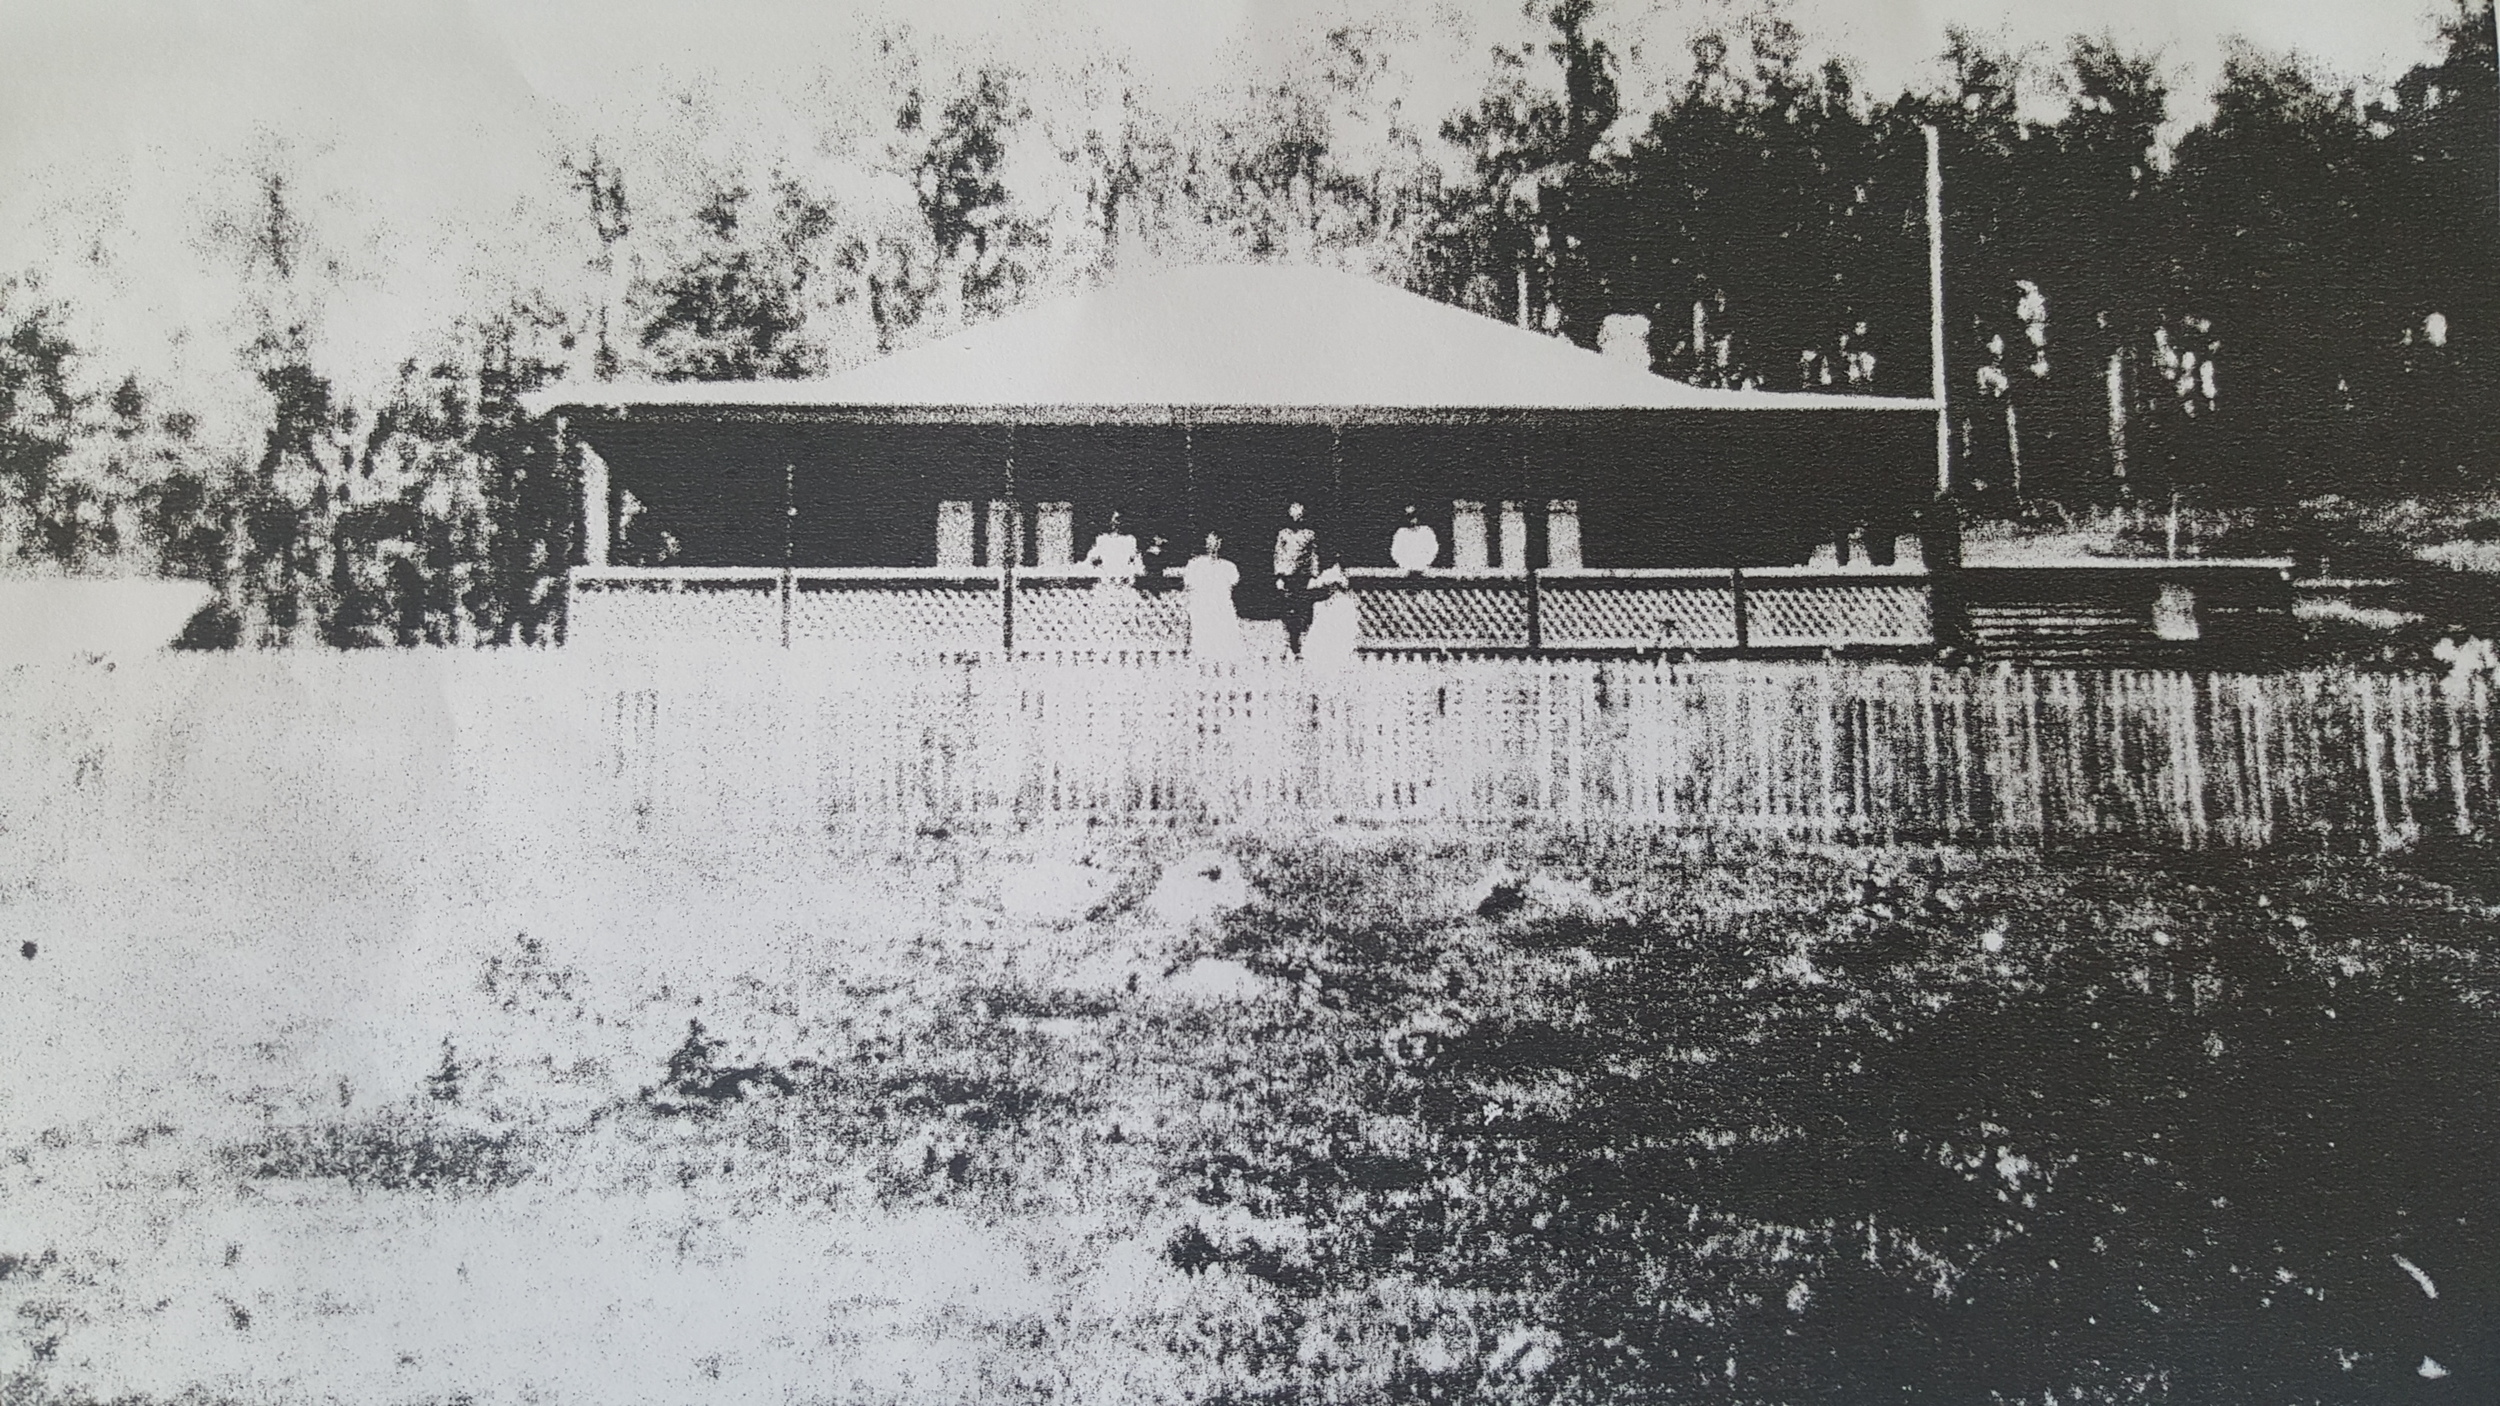 Mrs Happ's house on the farm that Ottam Singh used to frequent.